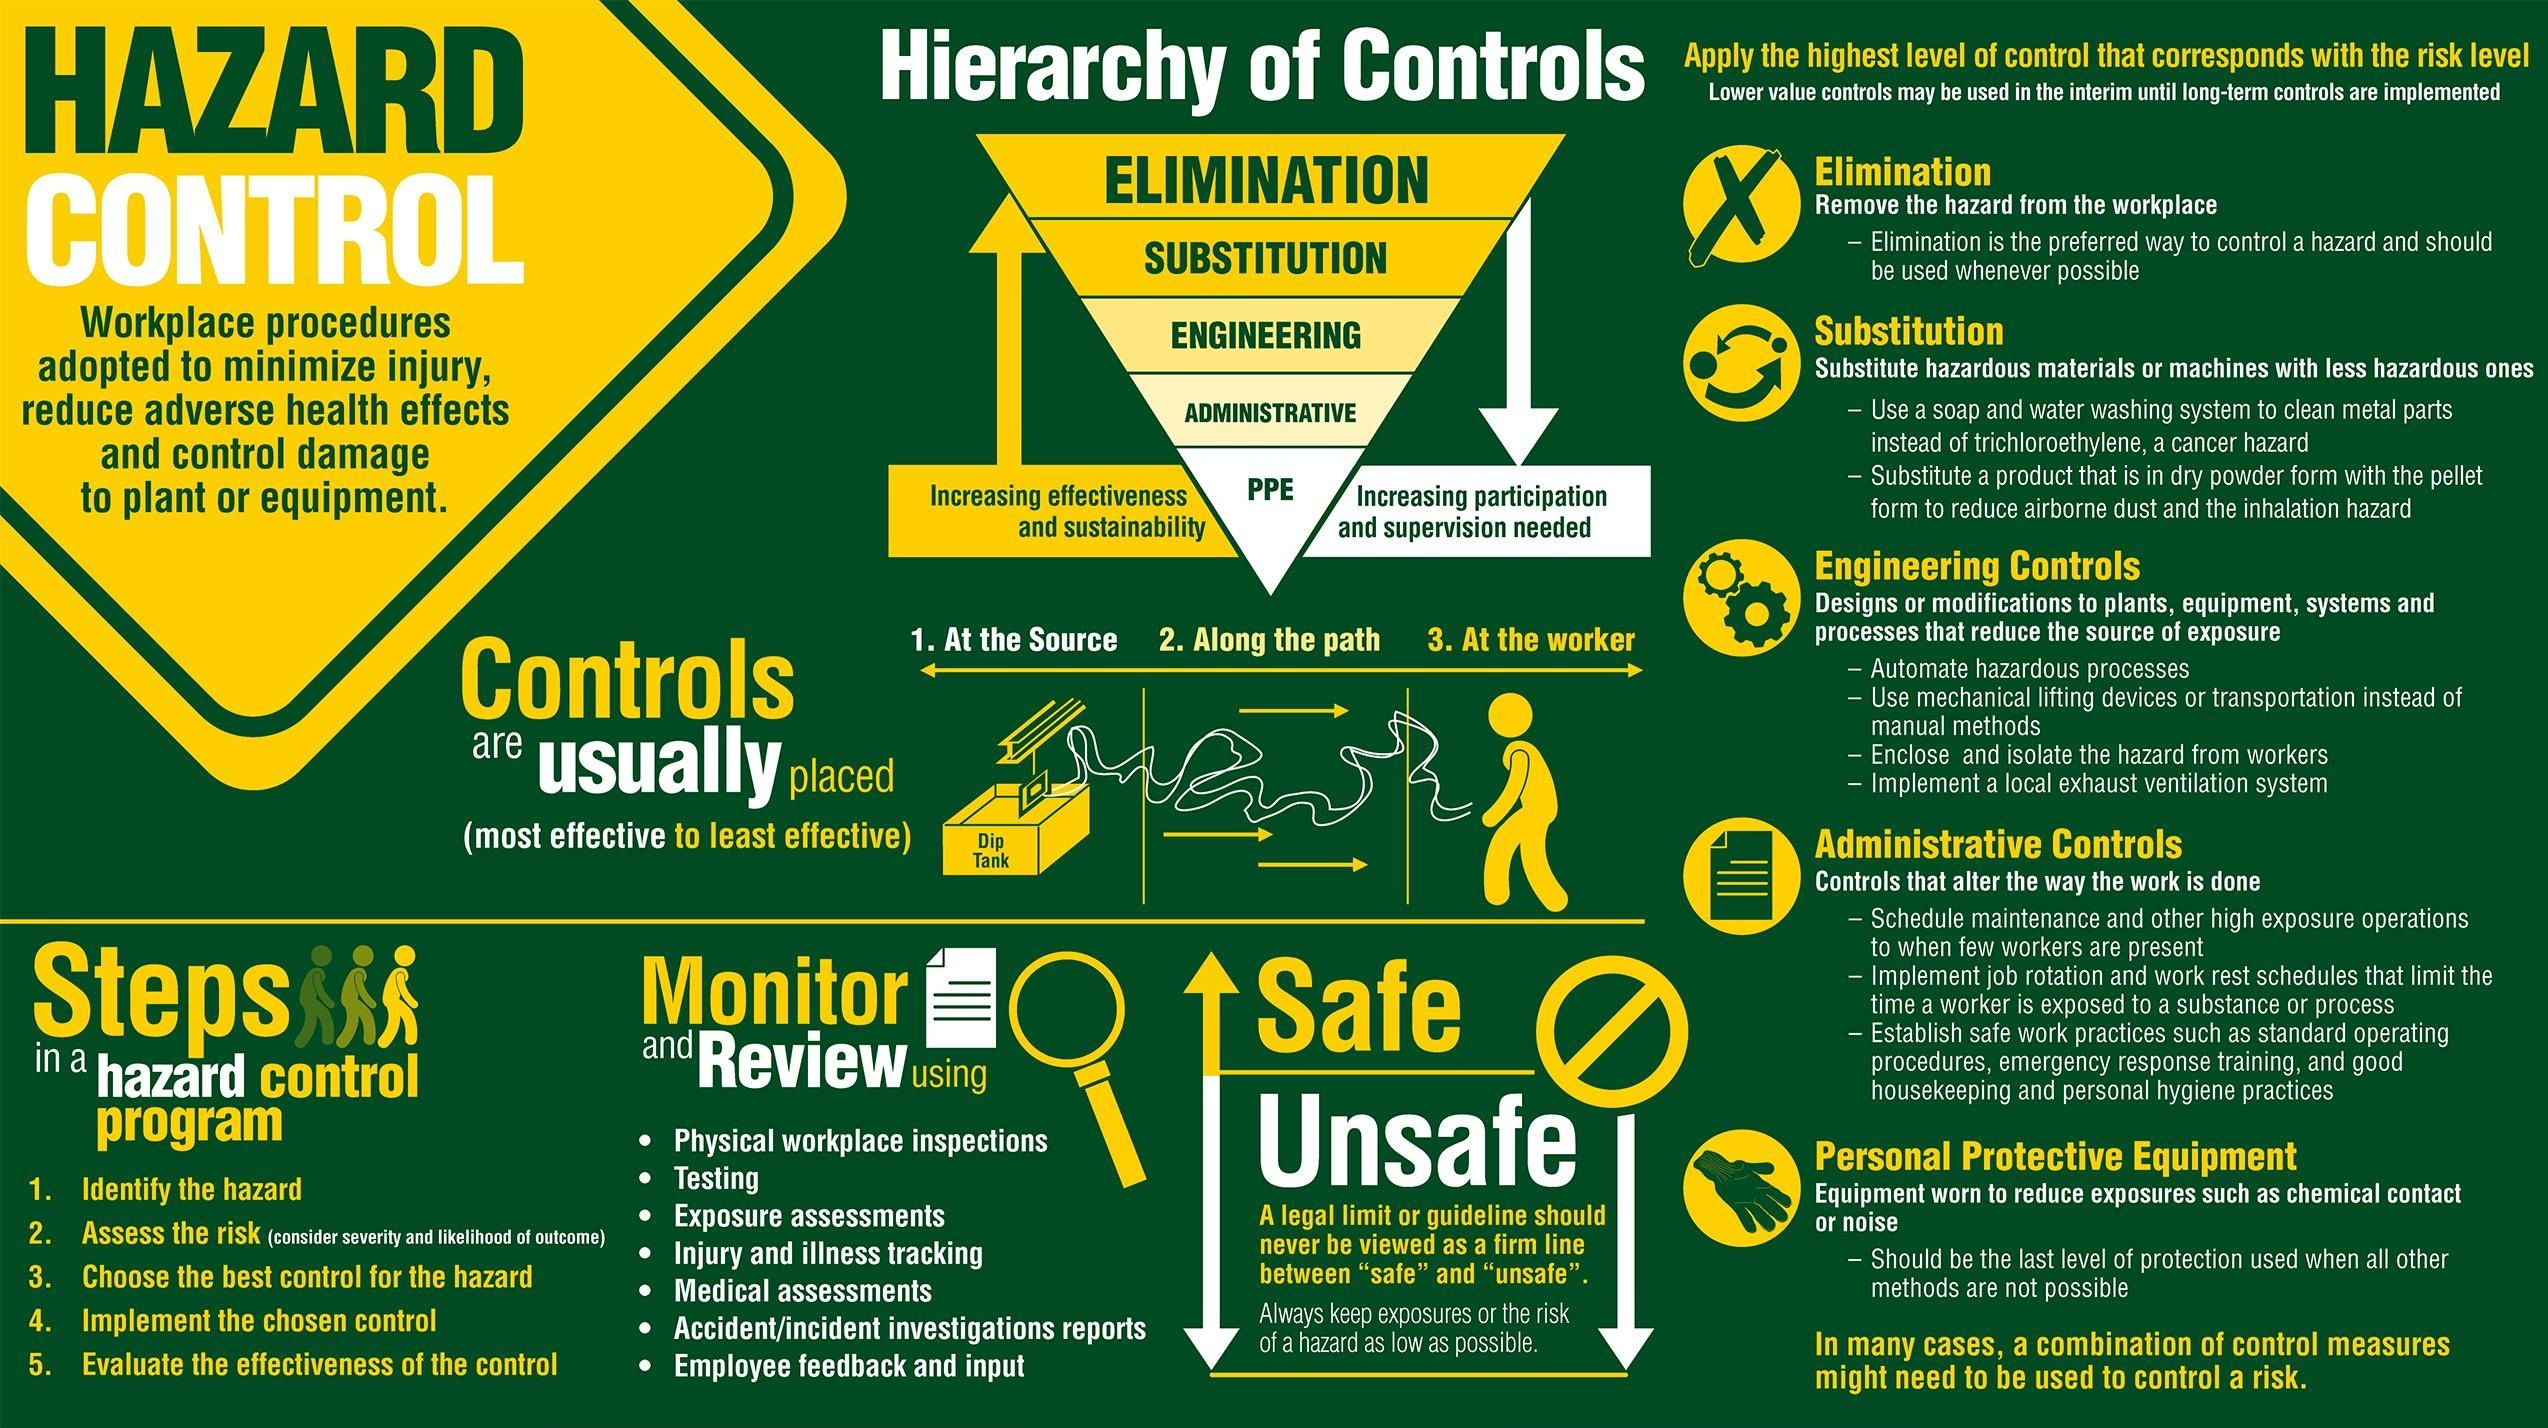 Importance of Hazardrous Control in Workplace Safety